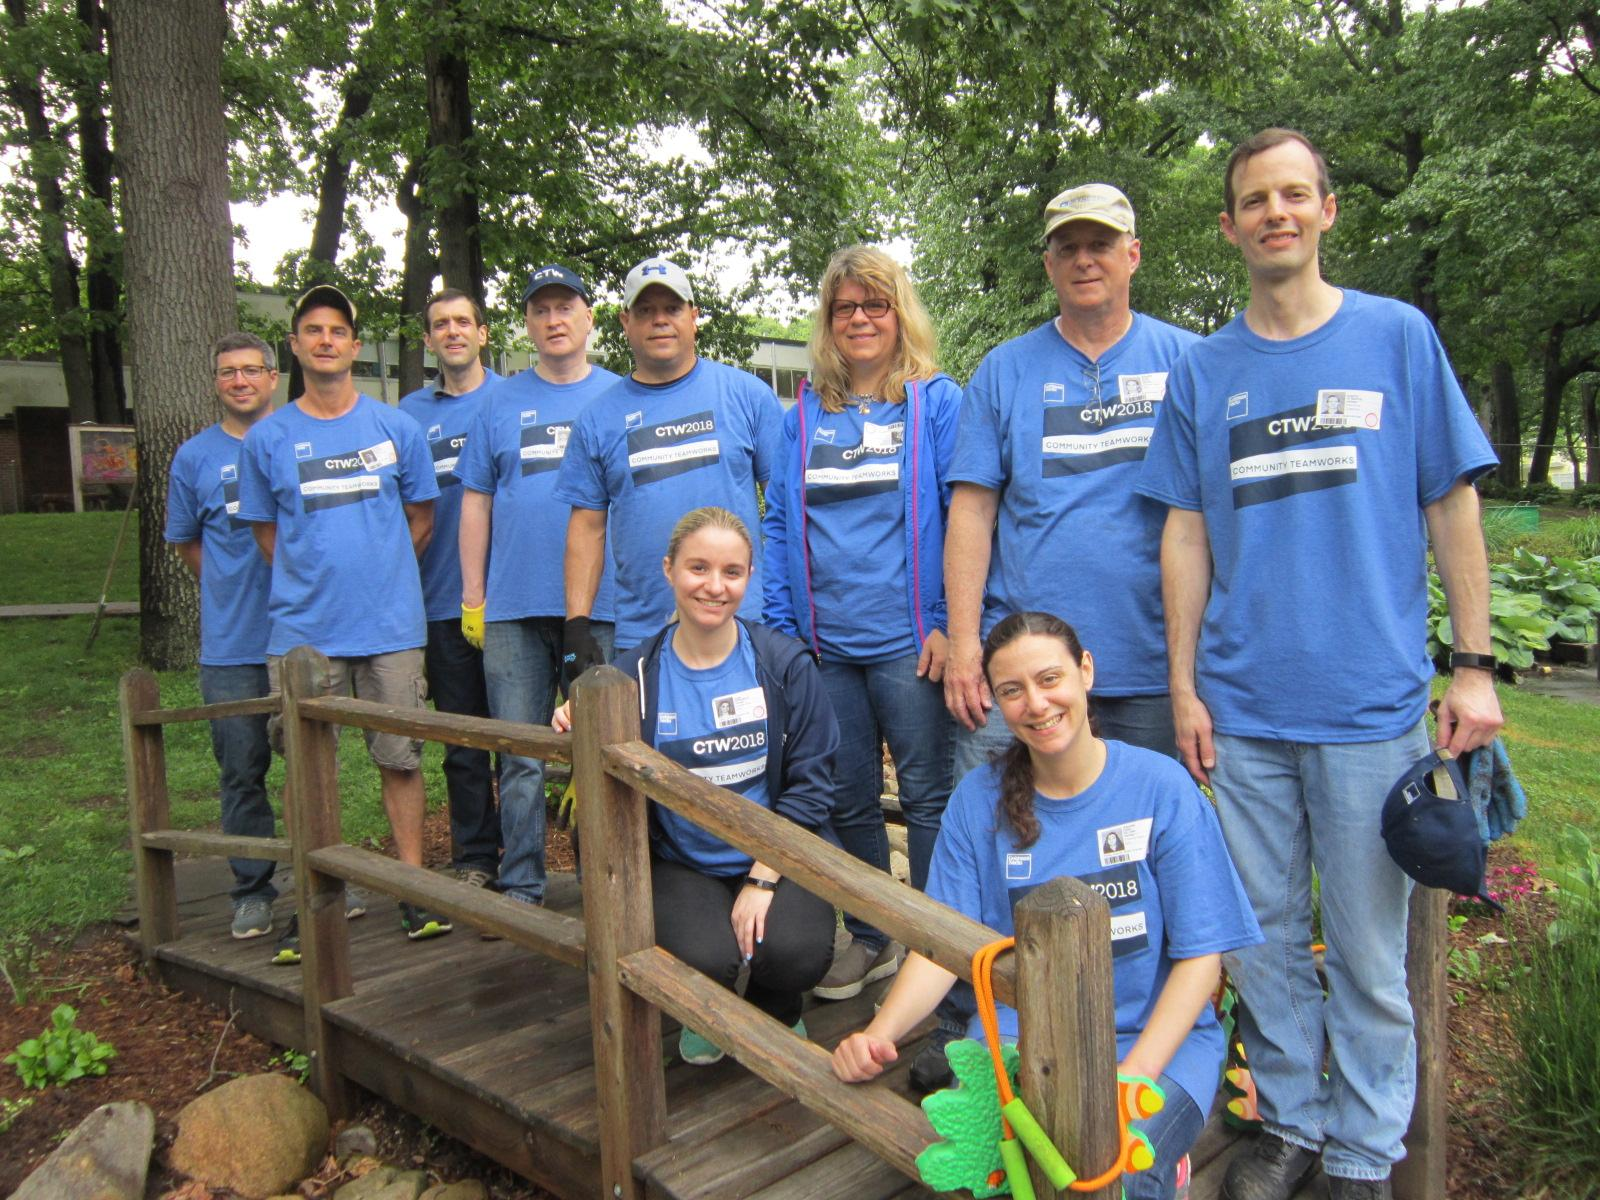 Volunteers from Goldman Sachs